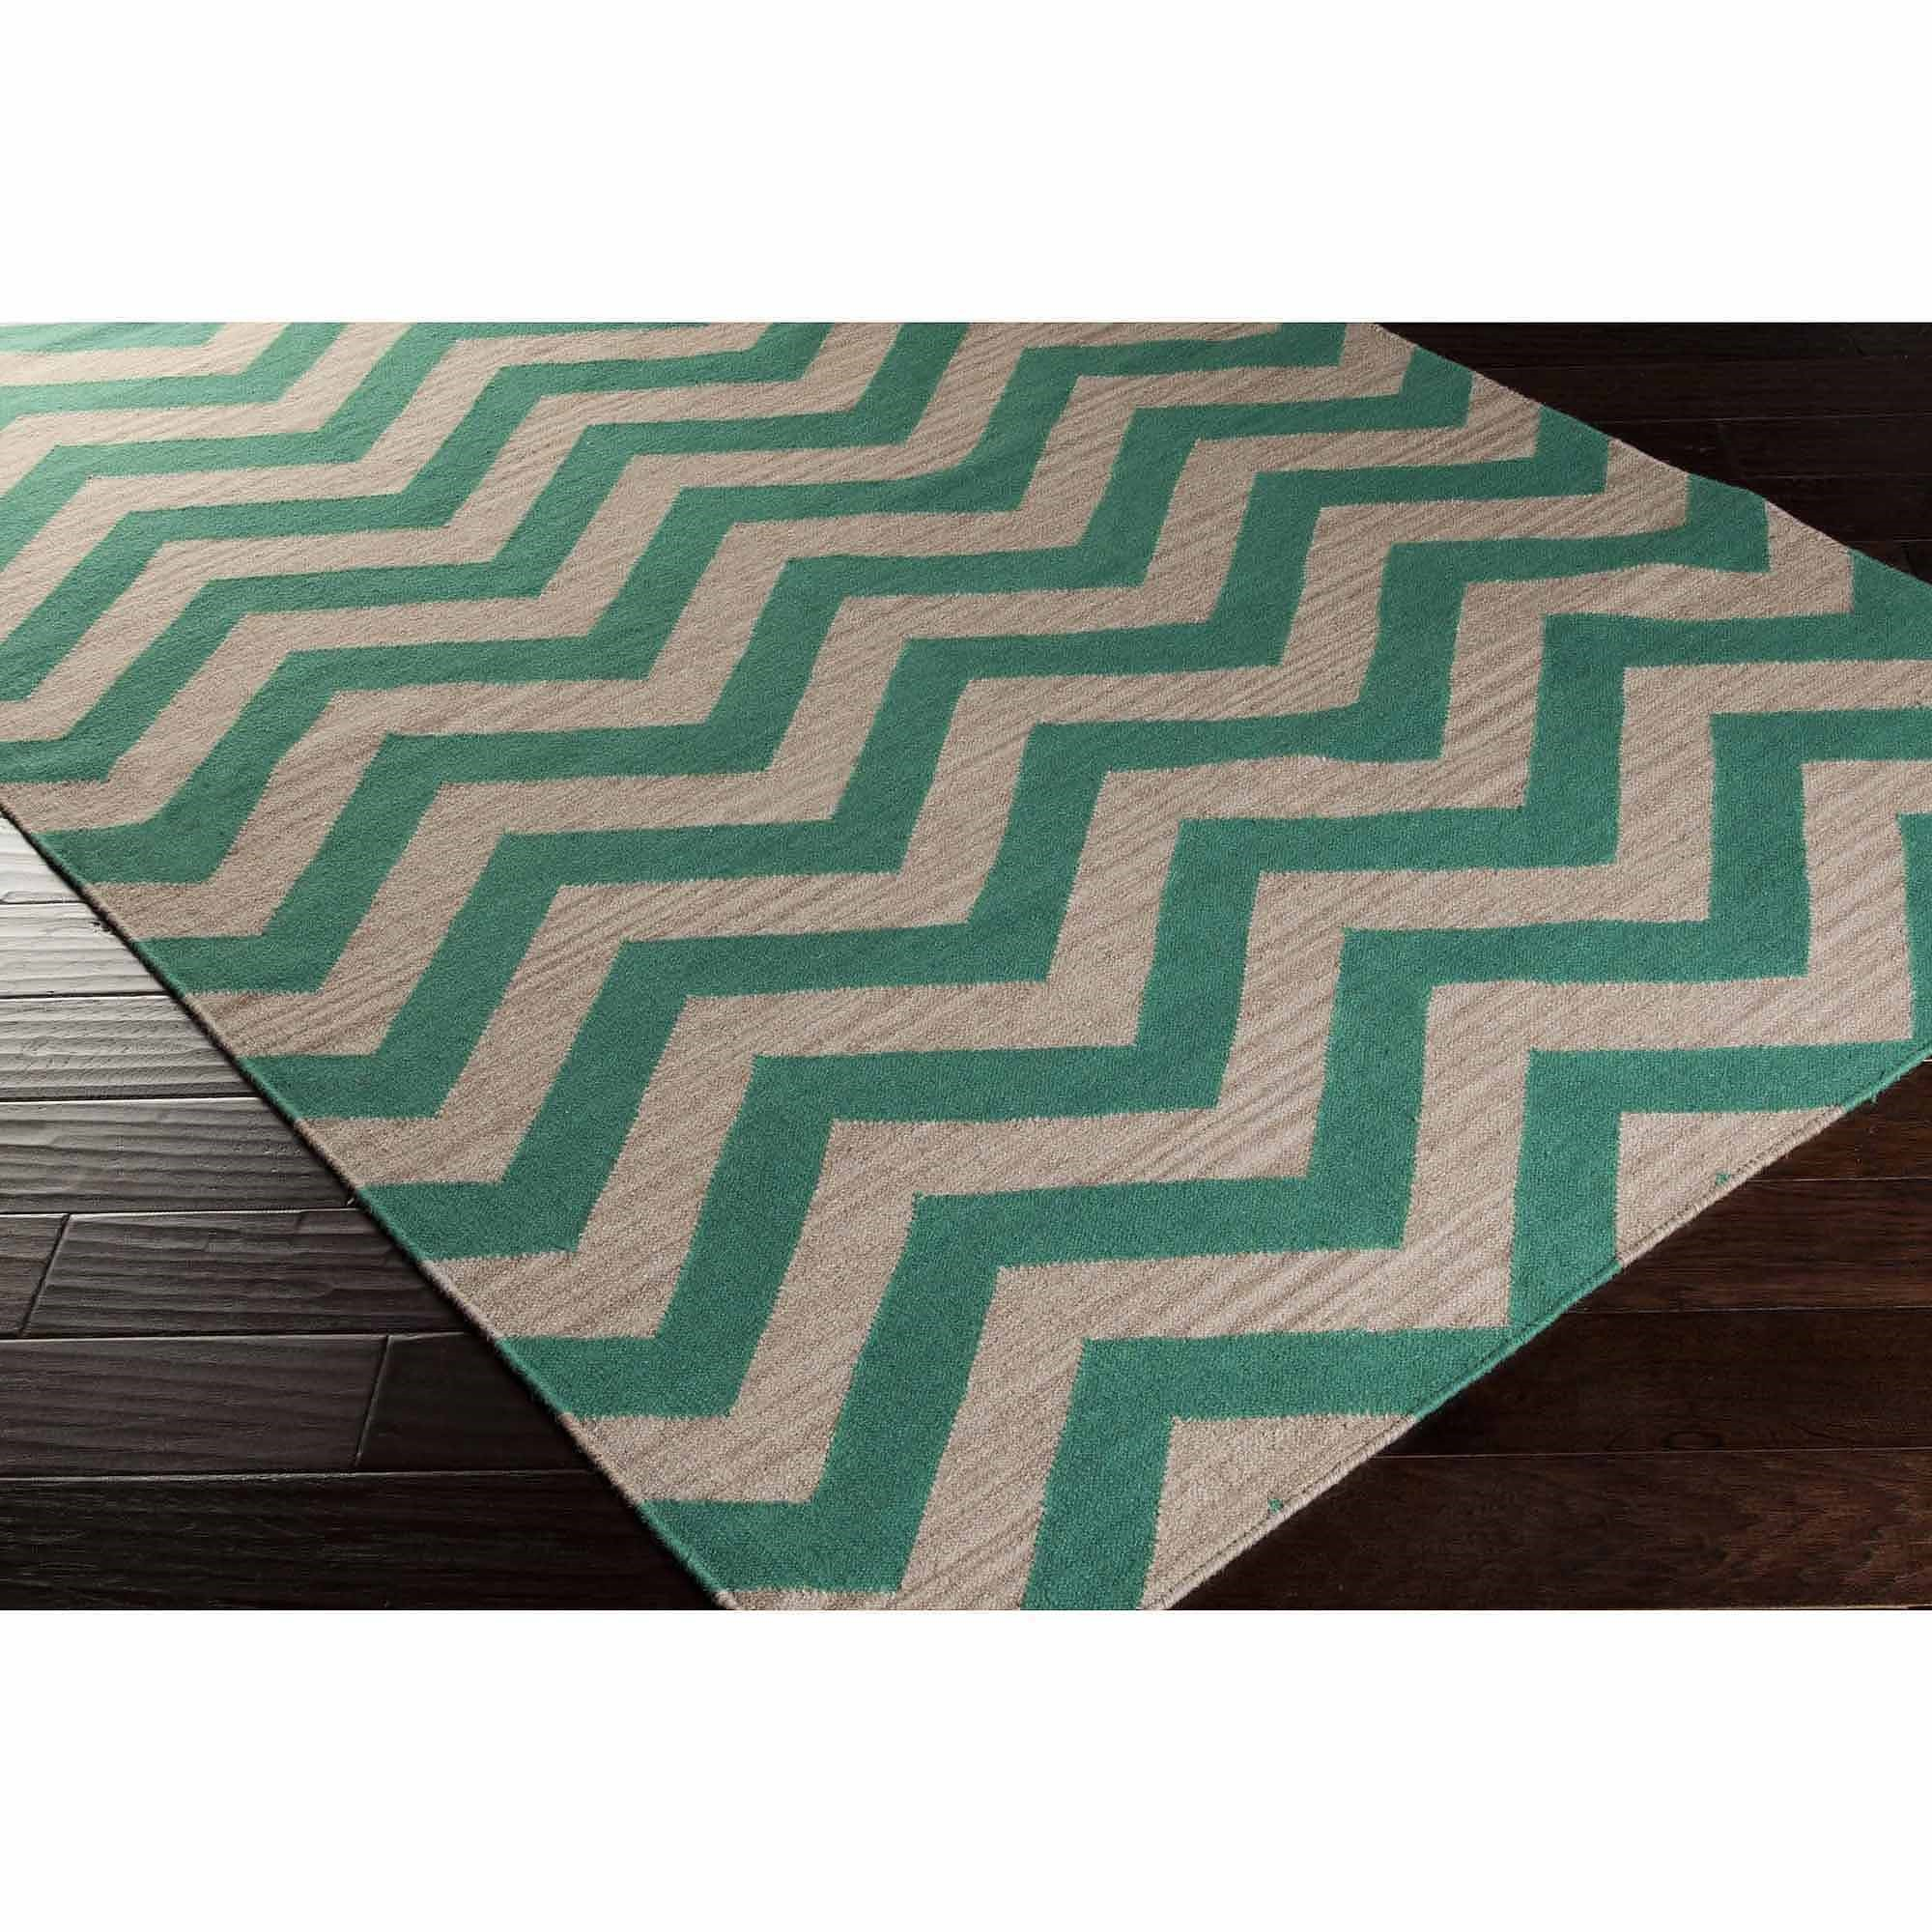 Art of Knot Laughlin Hand Woven Chic Chevron Flatweave Wool Area Rug, Emerald